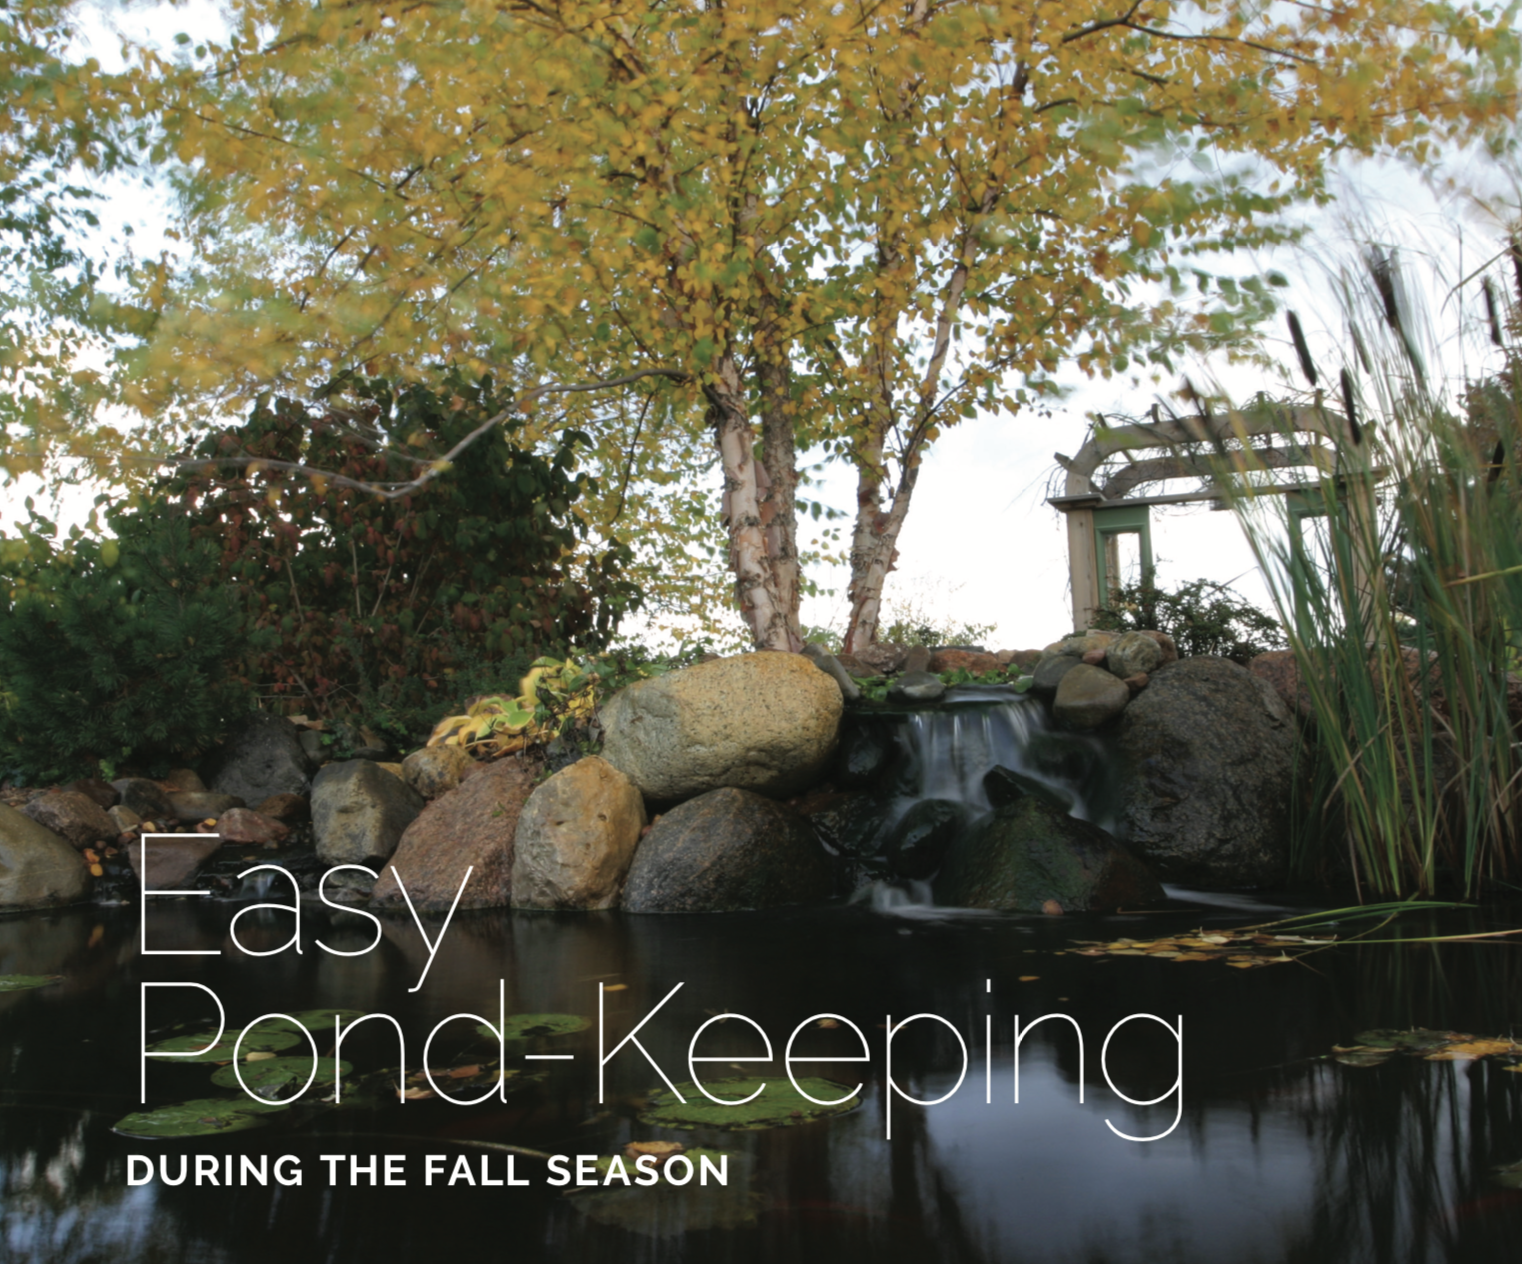 Read this    e-book    for tips and advice on fall pond maintenance!